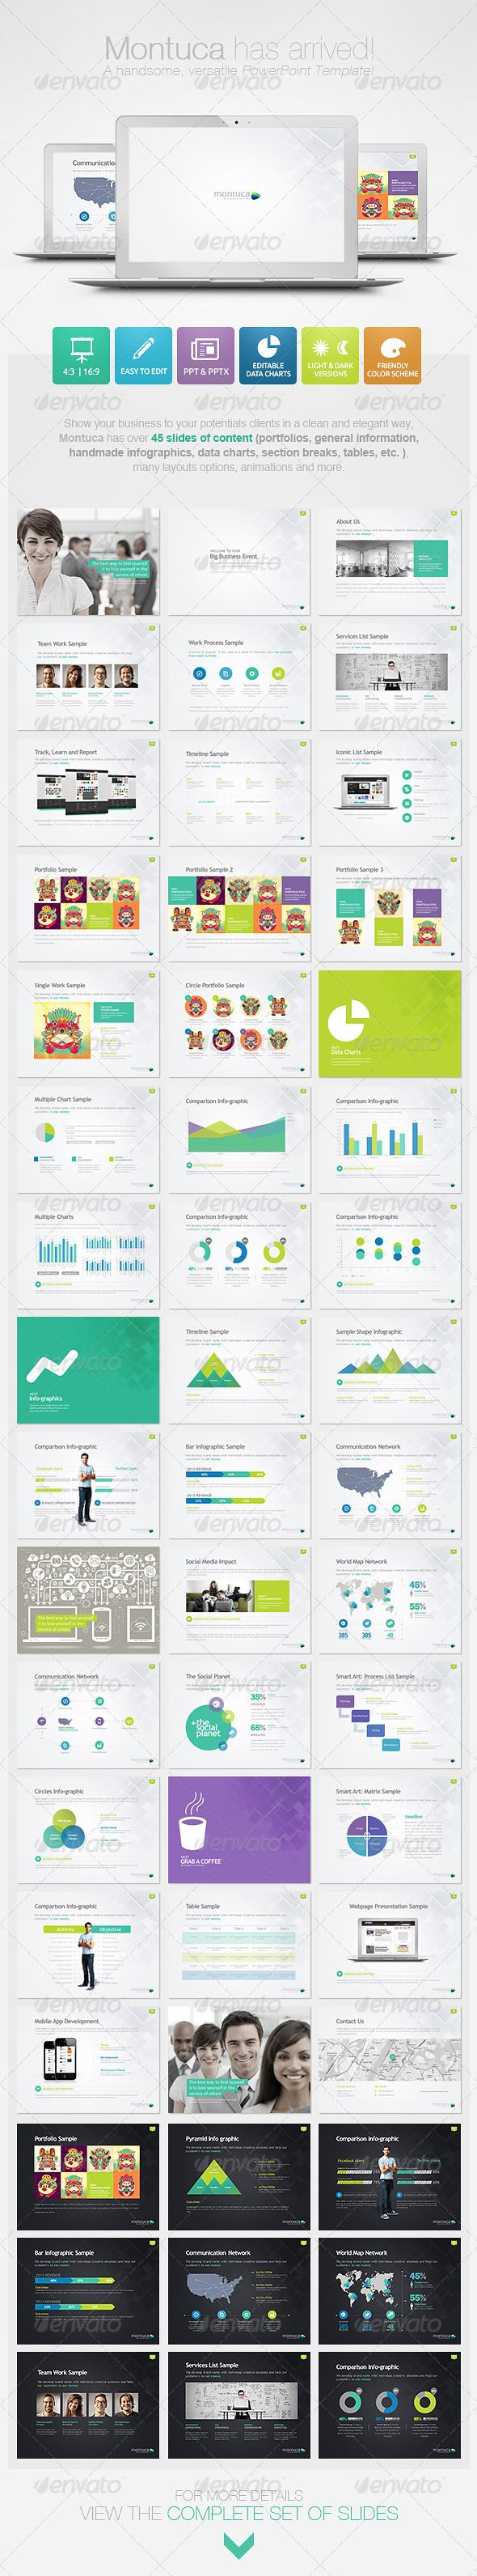 Awesome! - Montuca Powerpoint Presentation Template